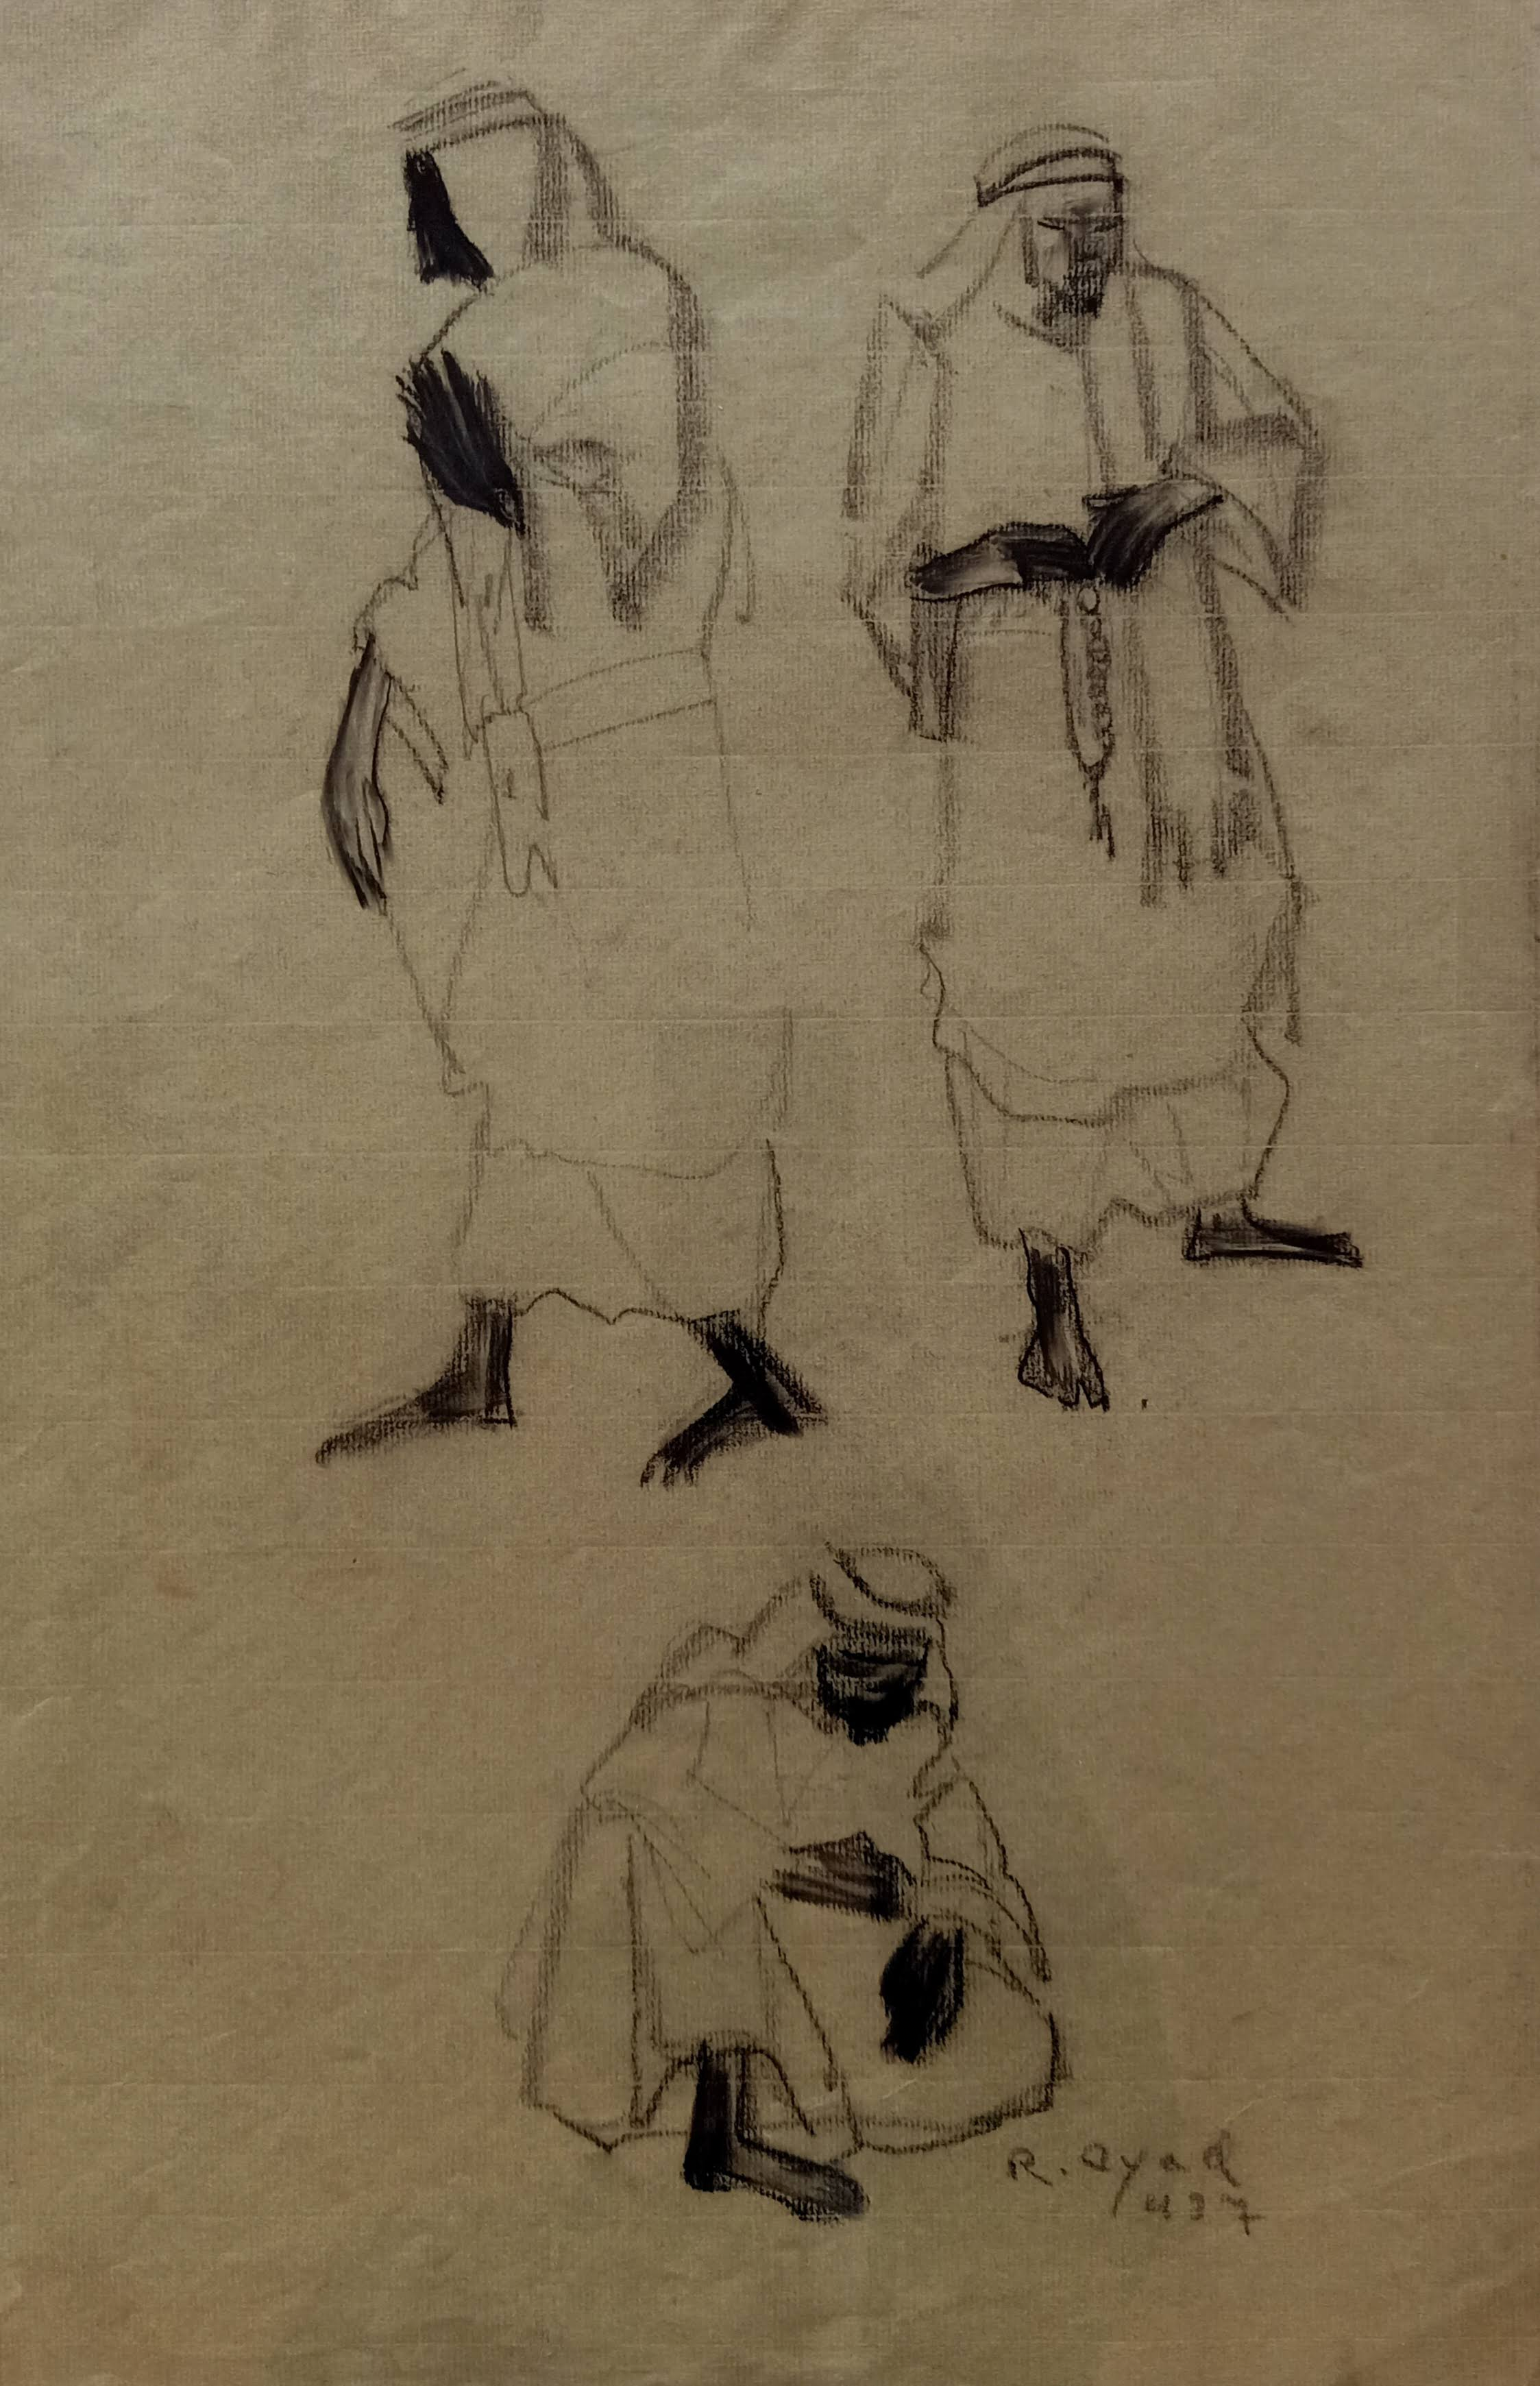 Ragheb Ayad, Three Bedouins, 1937. Mixed media on paper 48×33 cm Signed and dated bottom right